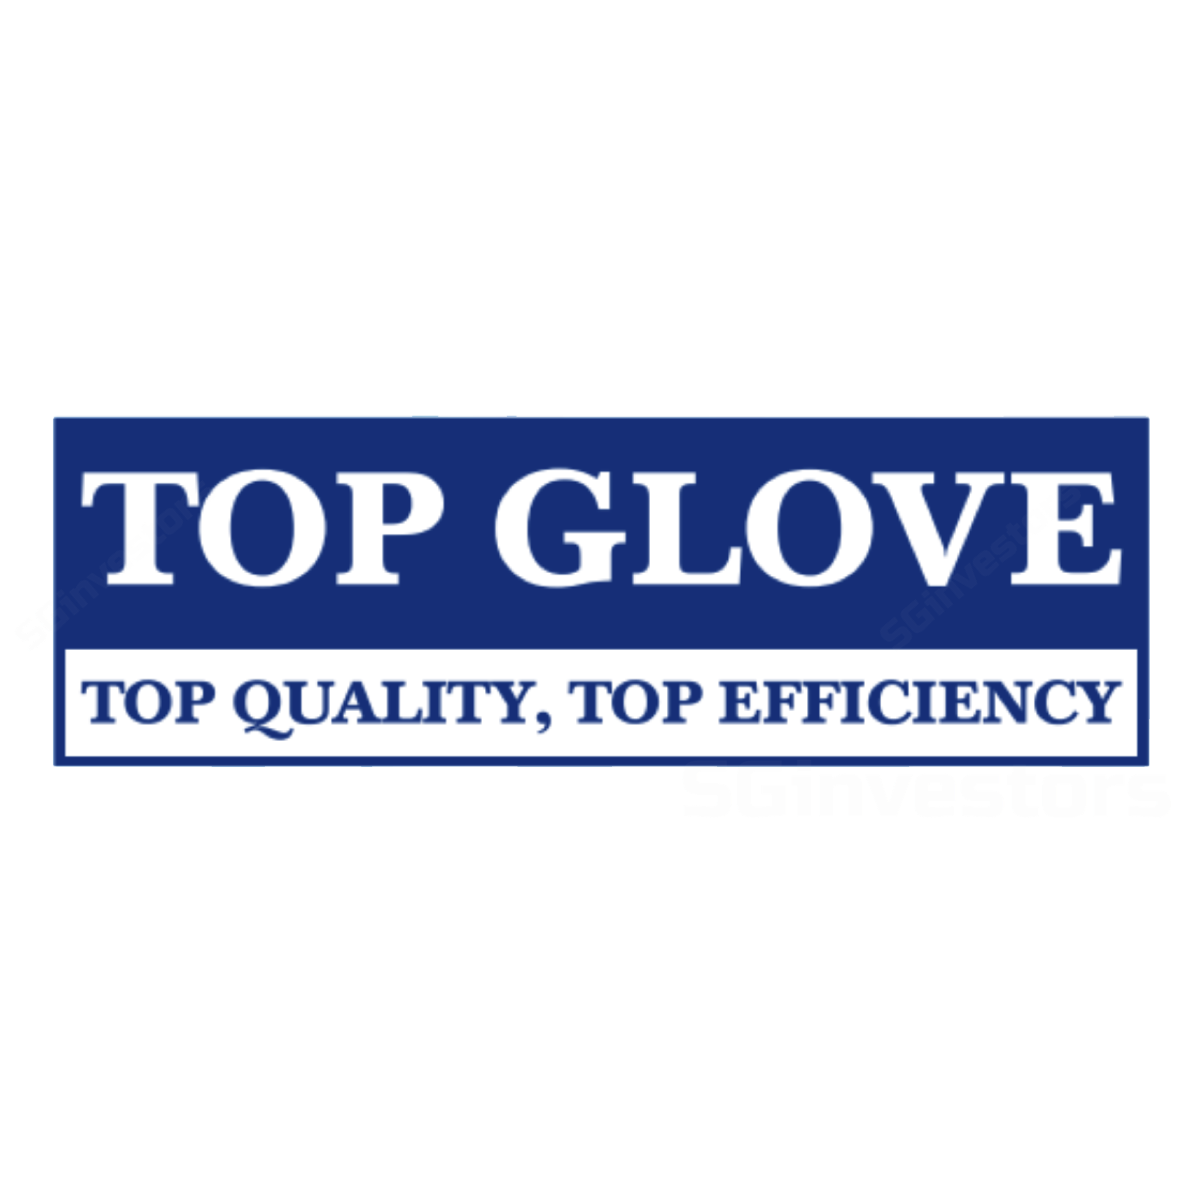 Top Glove (TOPG MK) - Maybank Kim Eng 2017-11-27: Buying Surgical Glove Specialist